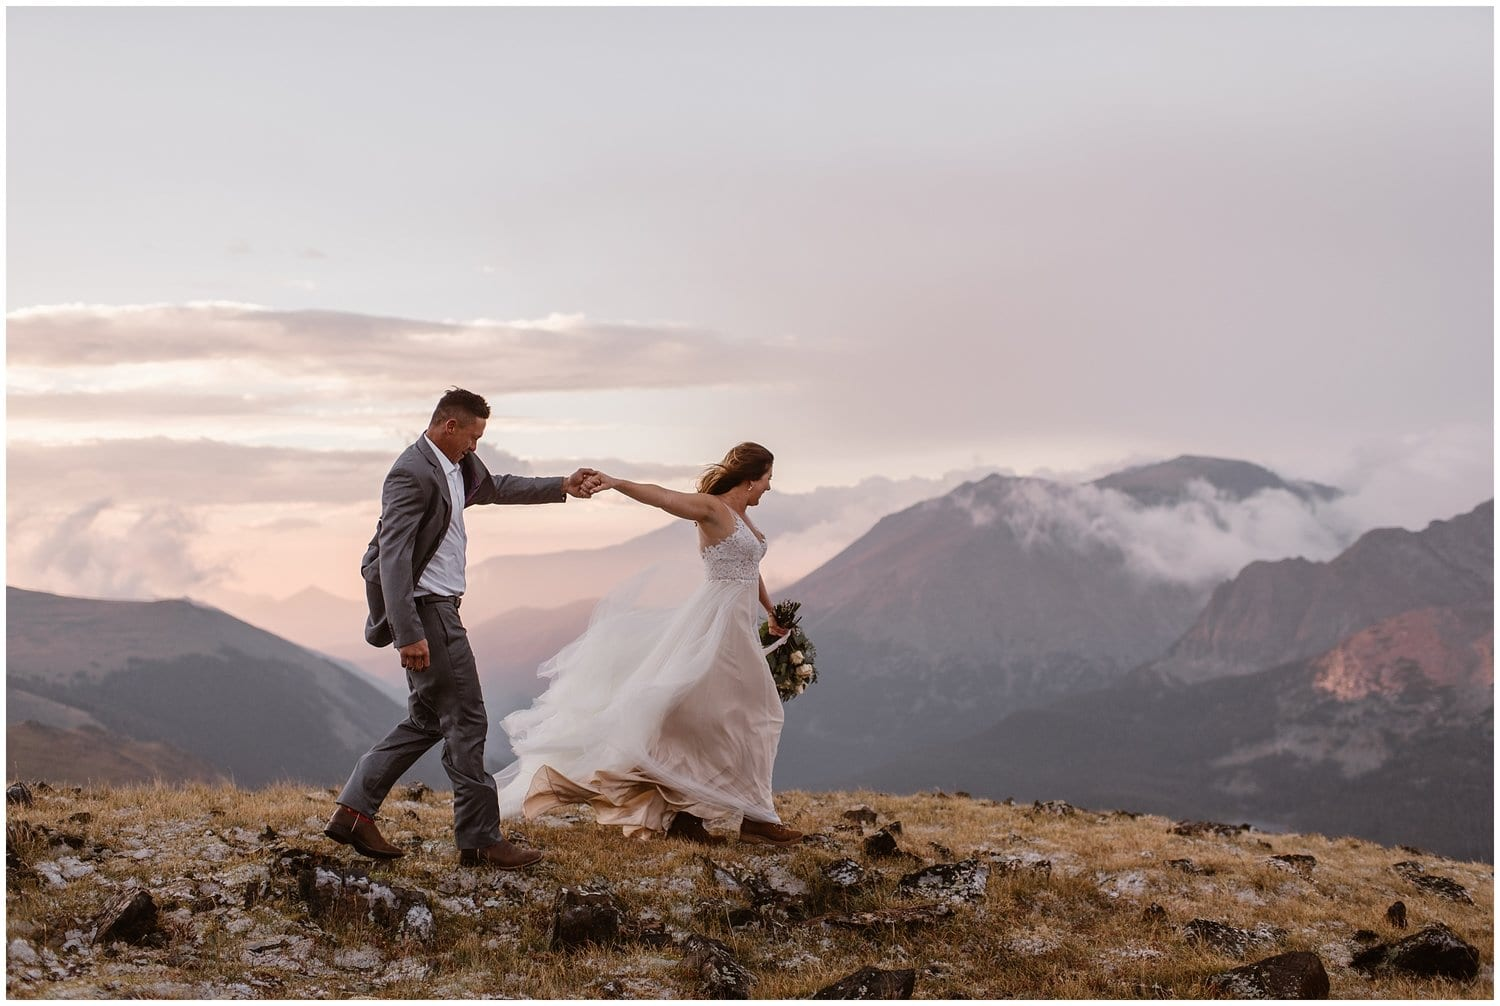 A bride and groom walk hand in hand in the mountains on their wedding day.